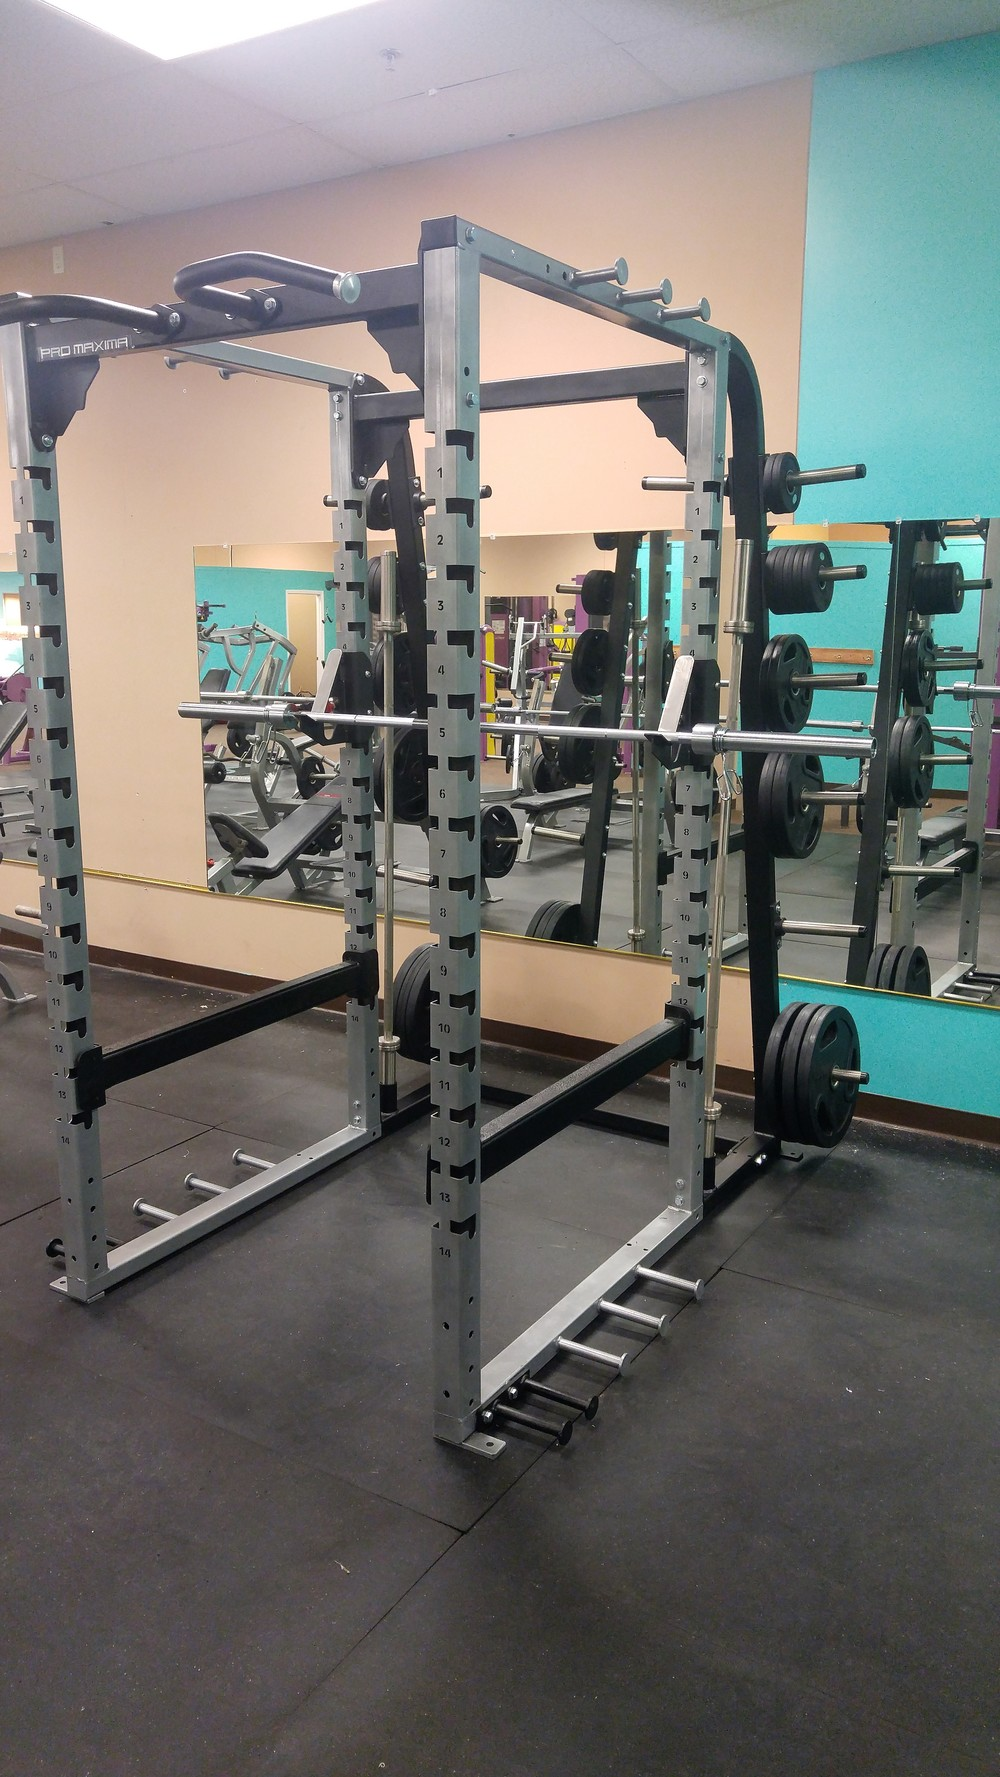 Power Rack.jpg